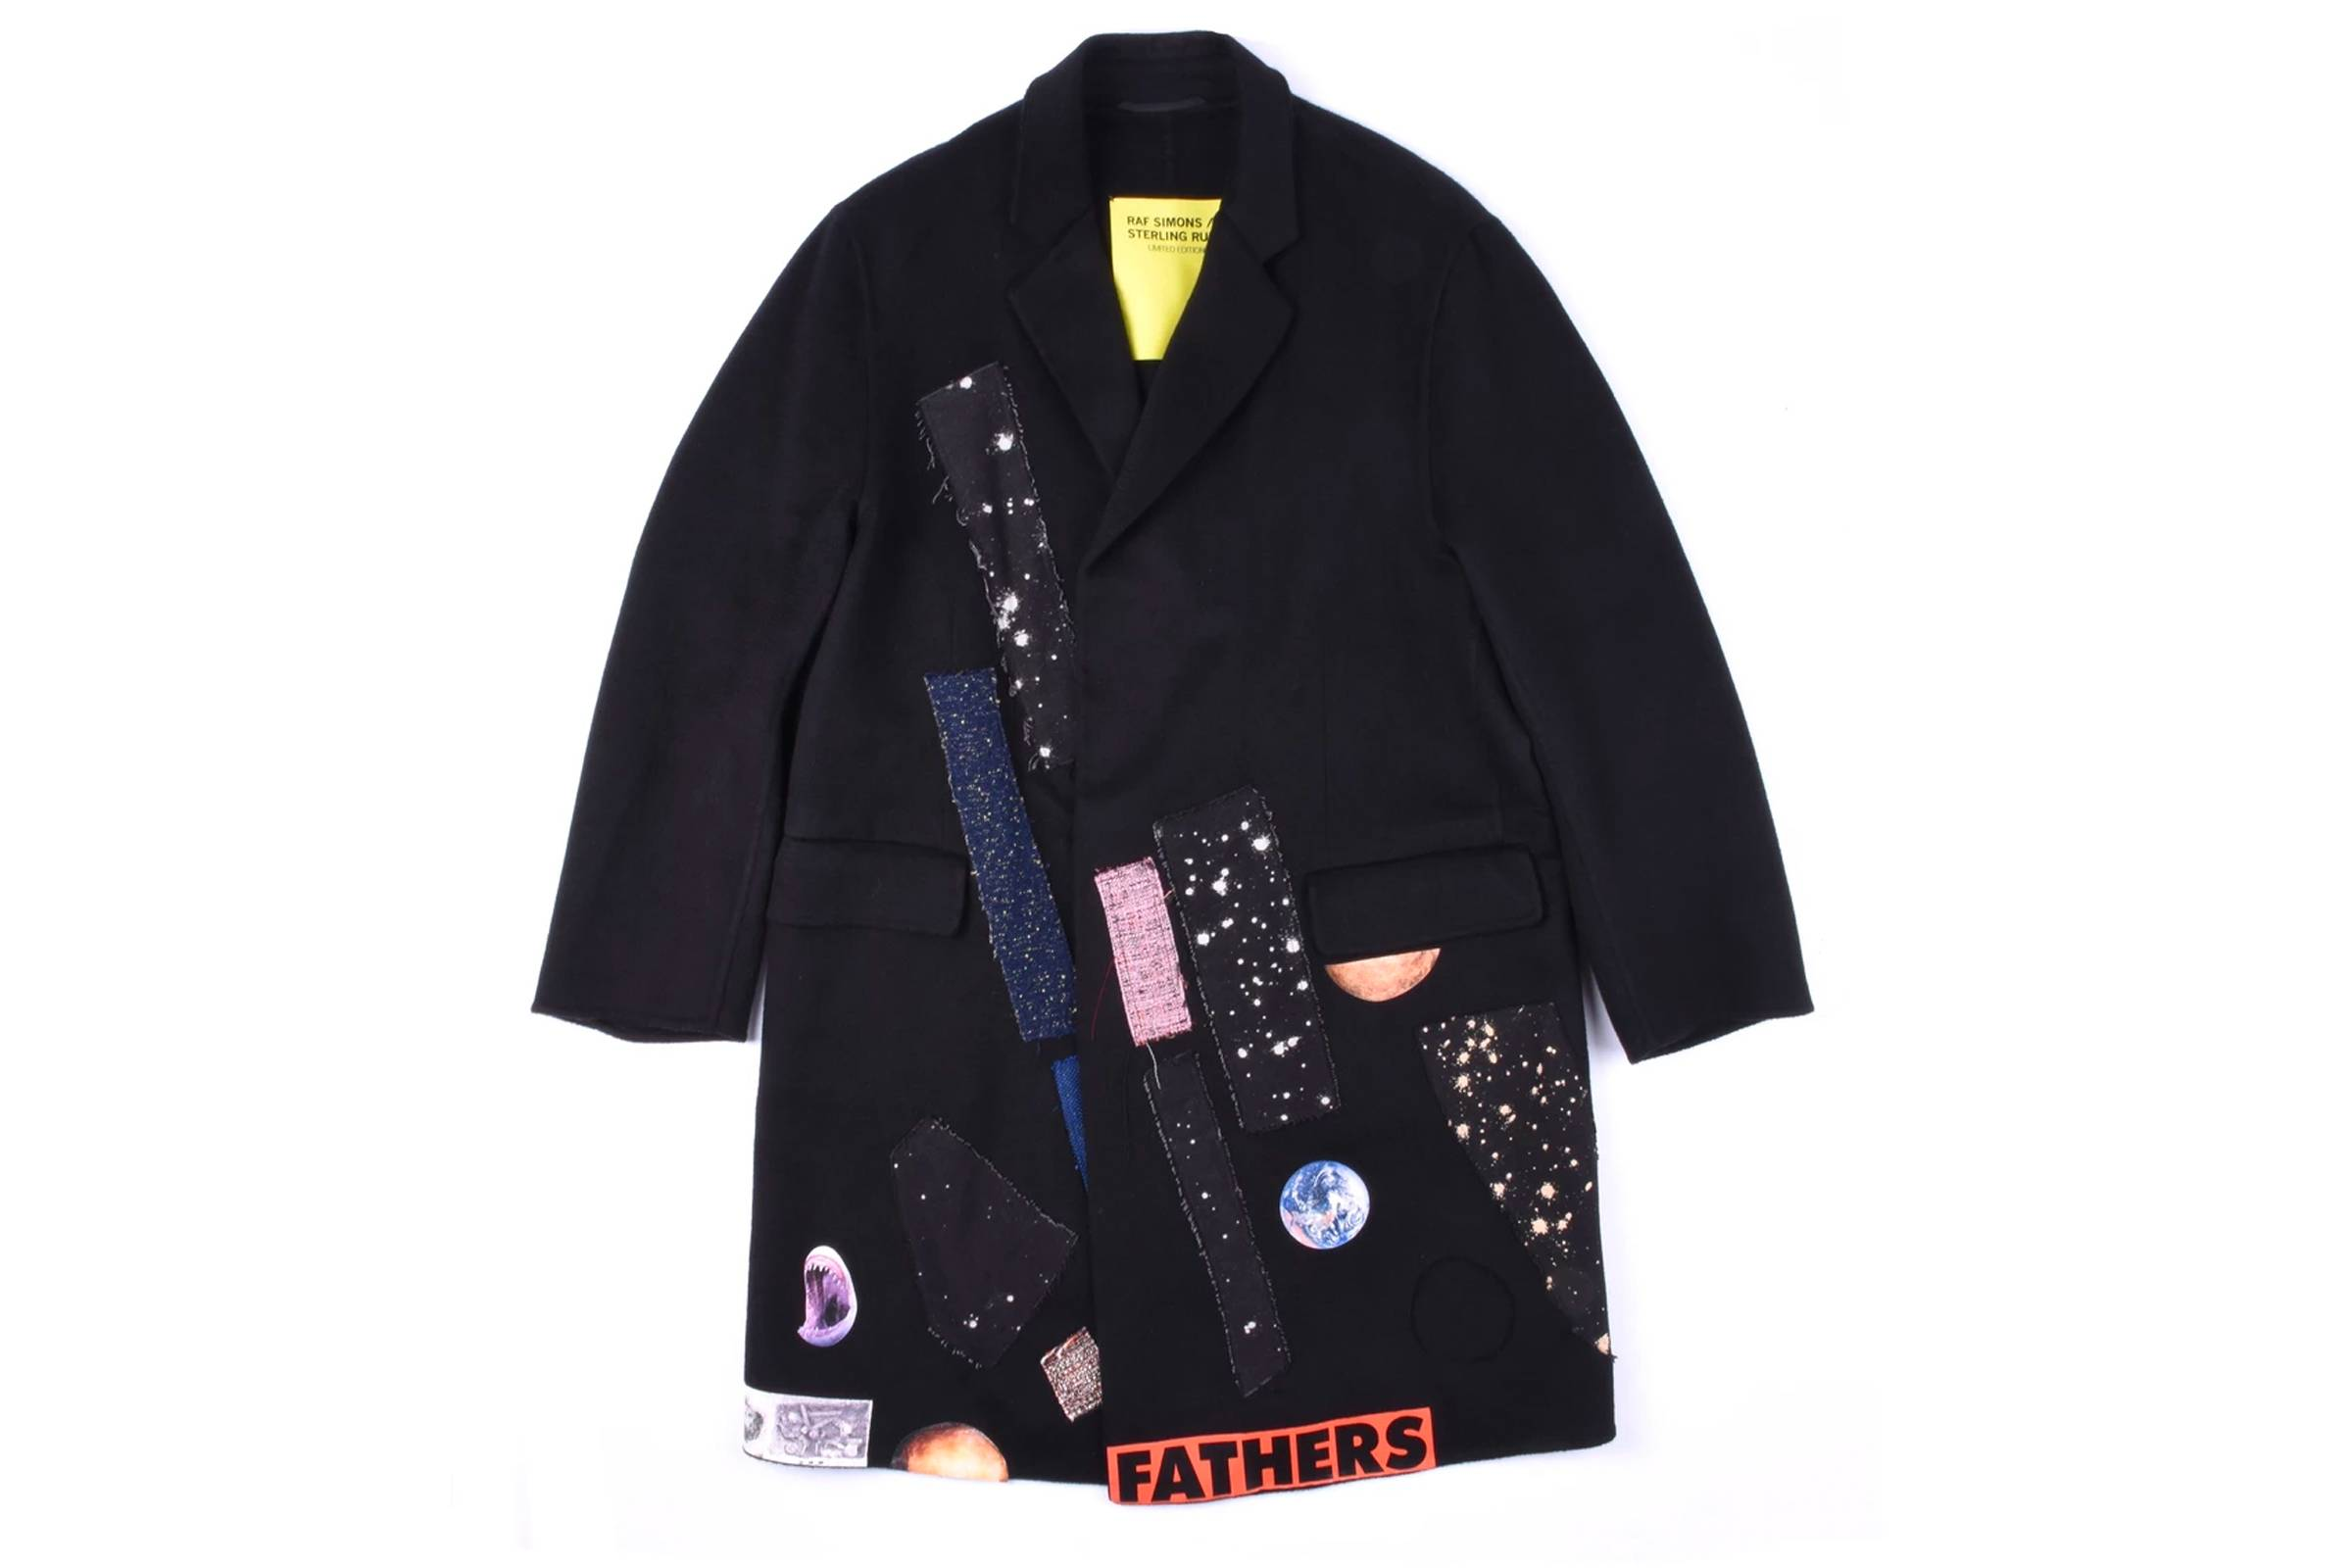 Raf Simons x Sterling Ruby Cashmere Coat